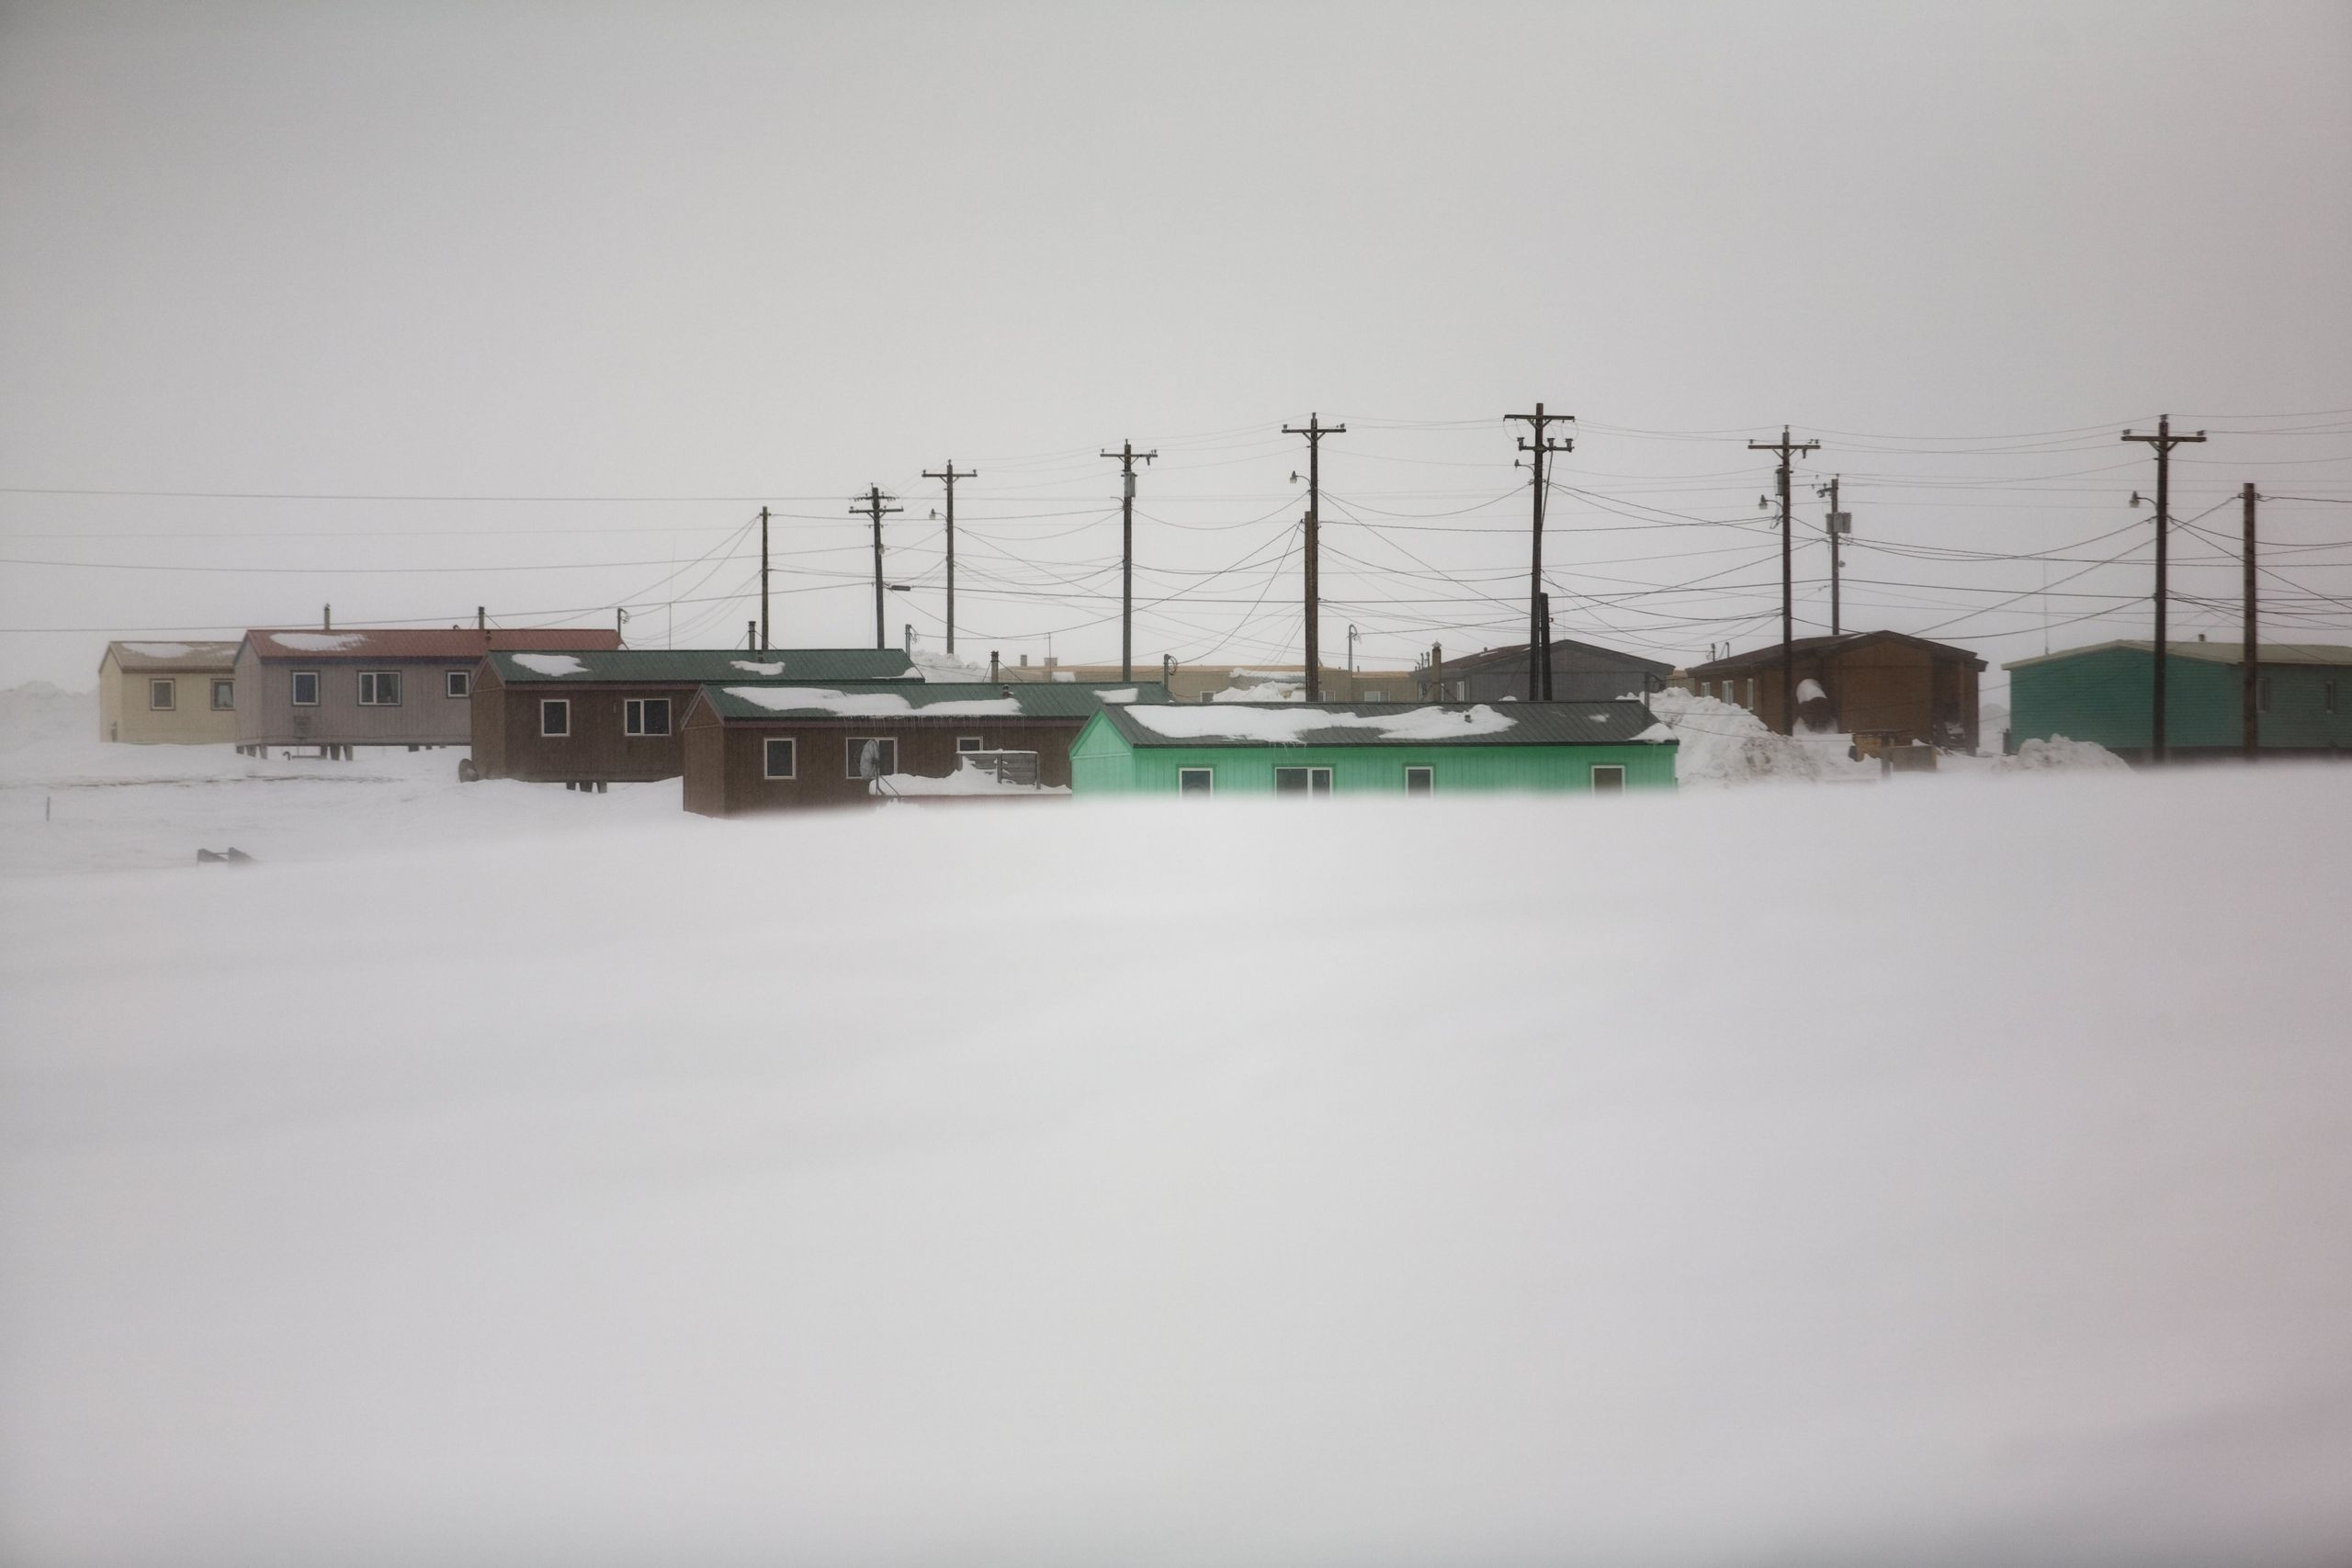 The town of Kaktovik, which sits 100 miles from its closest neighbor, shut down completely when the COVID-19 pandemic started